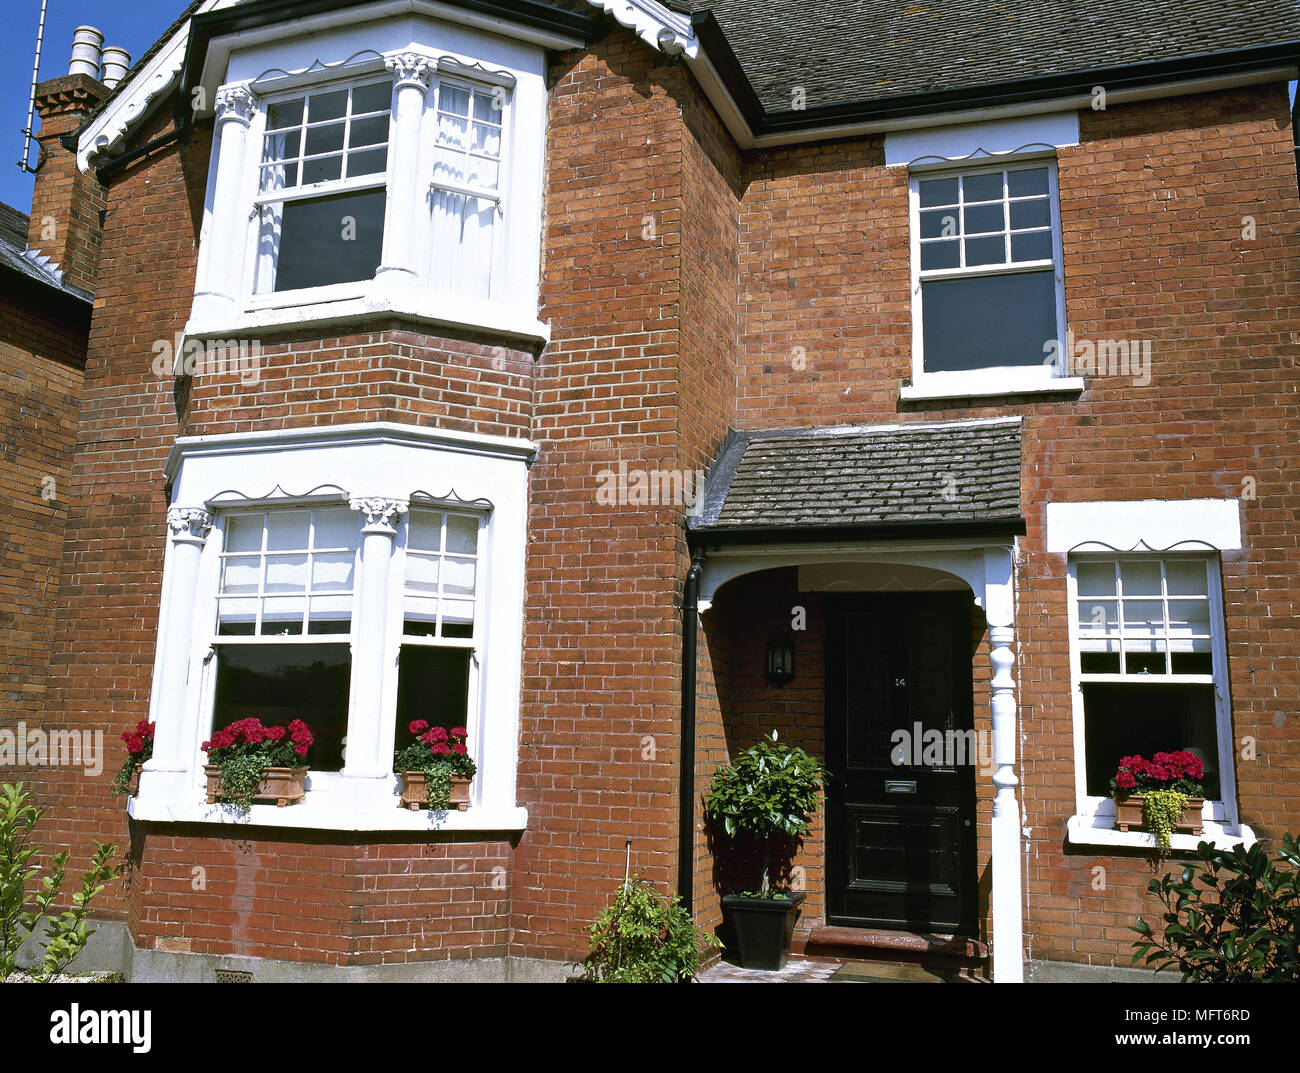 Fresh Exterior Victorian red brick town house bay windows exteriors  EF46